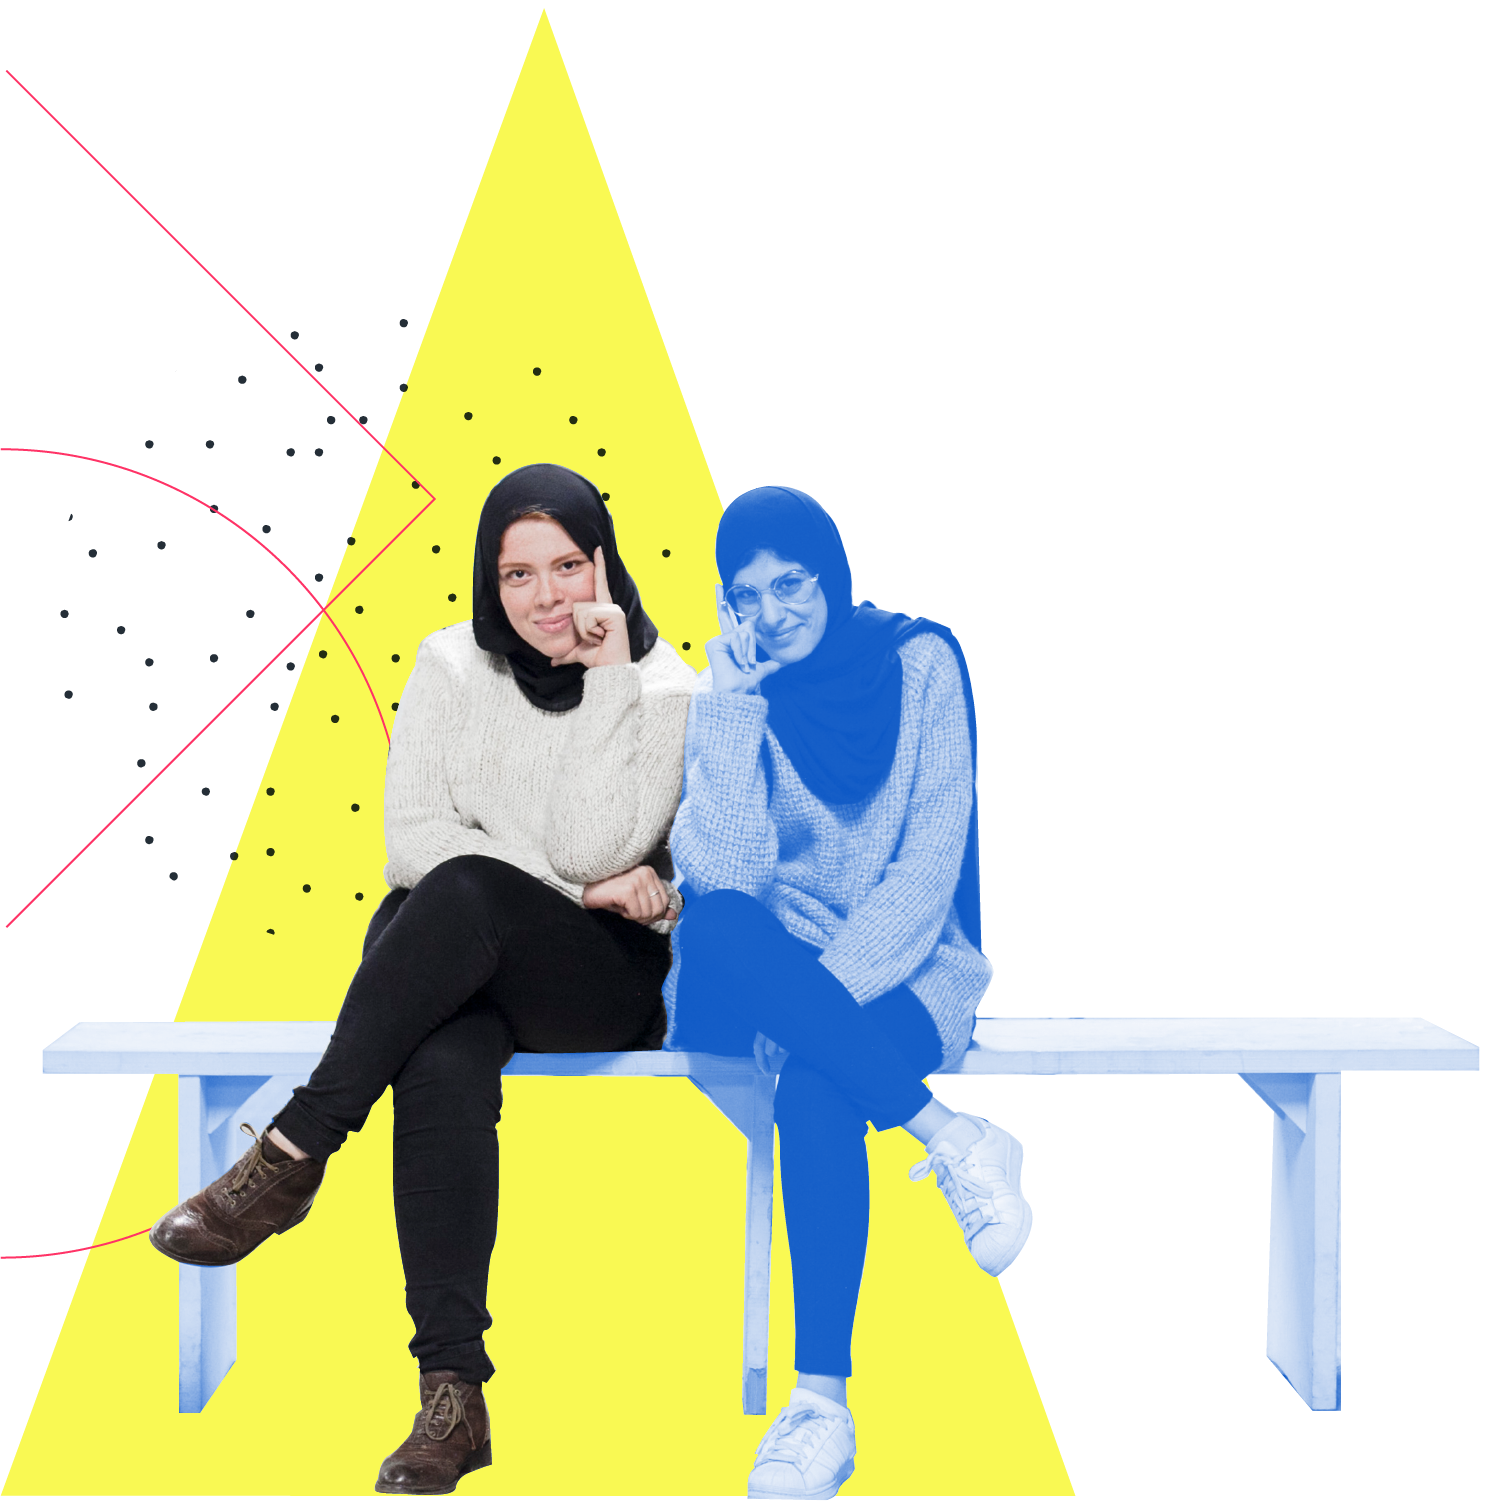 The experience introduces you to a wonderful network of people who really care about enhancement who try and to push forward good change. - Mirna Noaman (digital designer)International Committee of the Red Cross